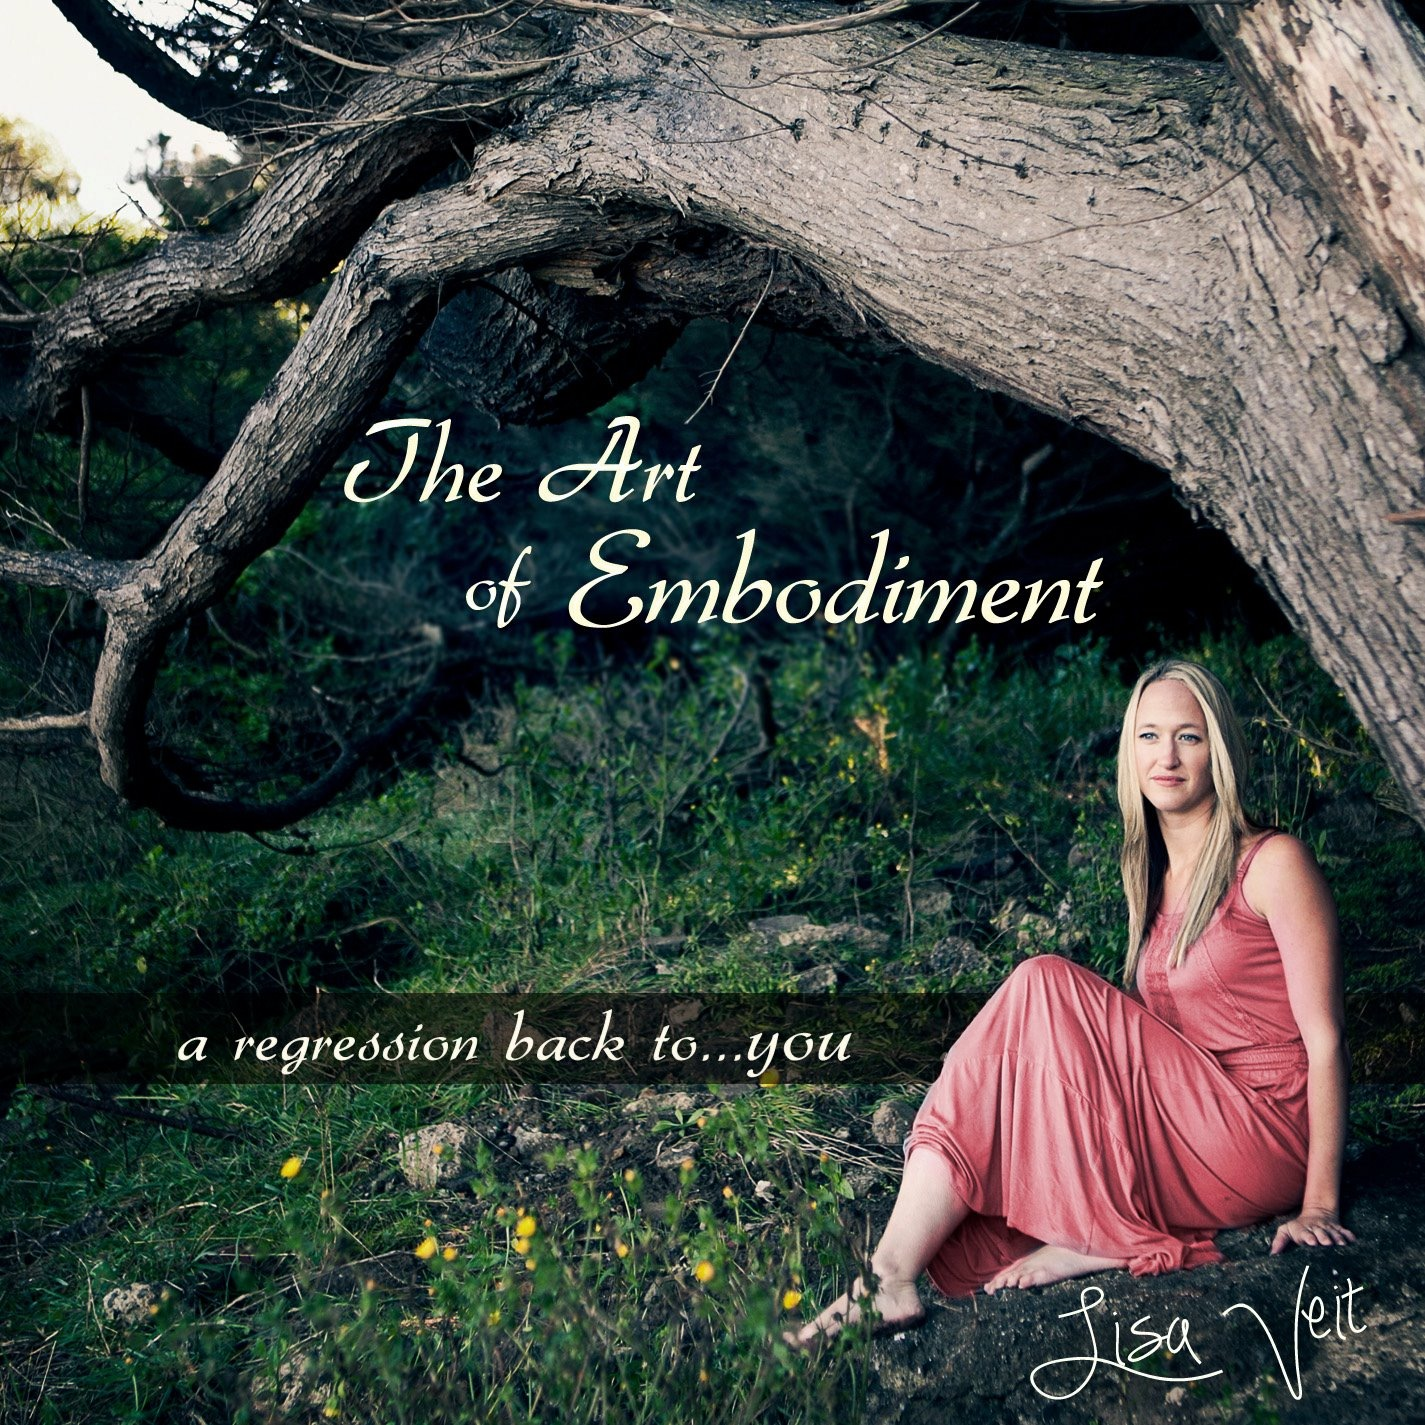 Buy Lisa's Meditation CD - Let's get your relaxation kick started!Buy The Art of Embodiment meditation CD on Amazon, or head over to the SPIRIT SHOP to purchase the download now!